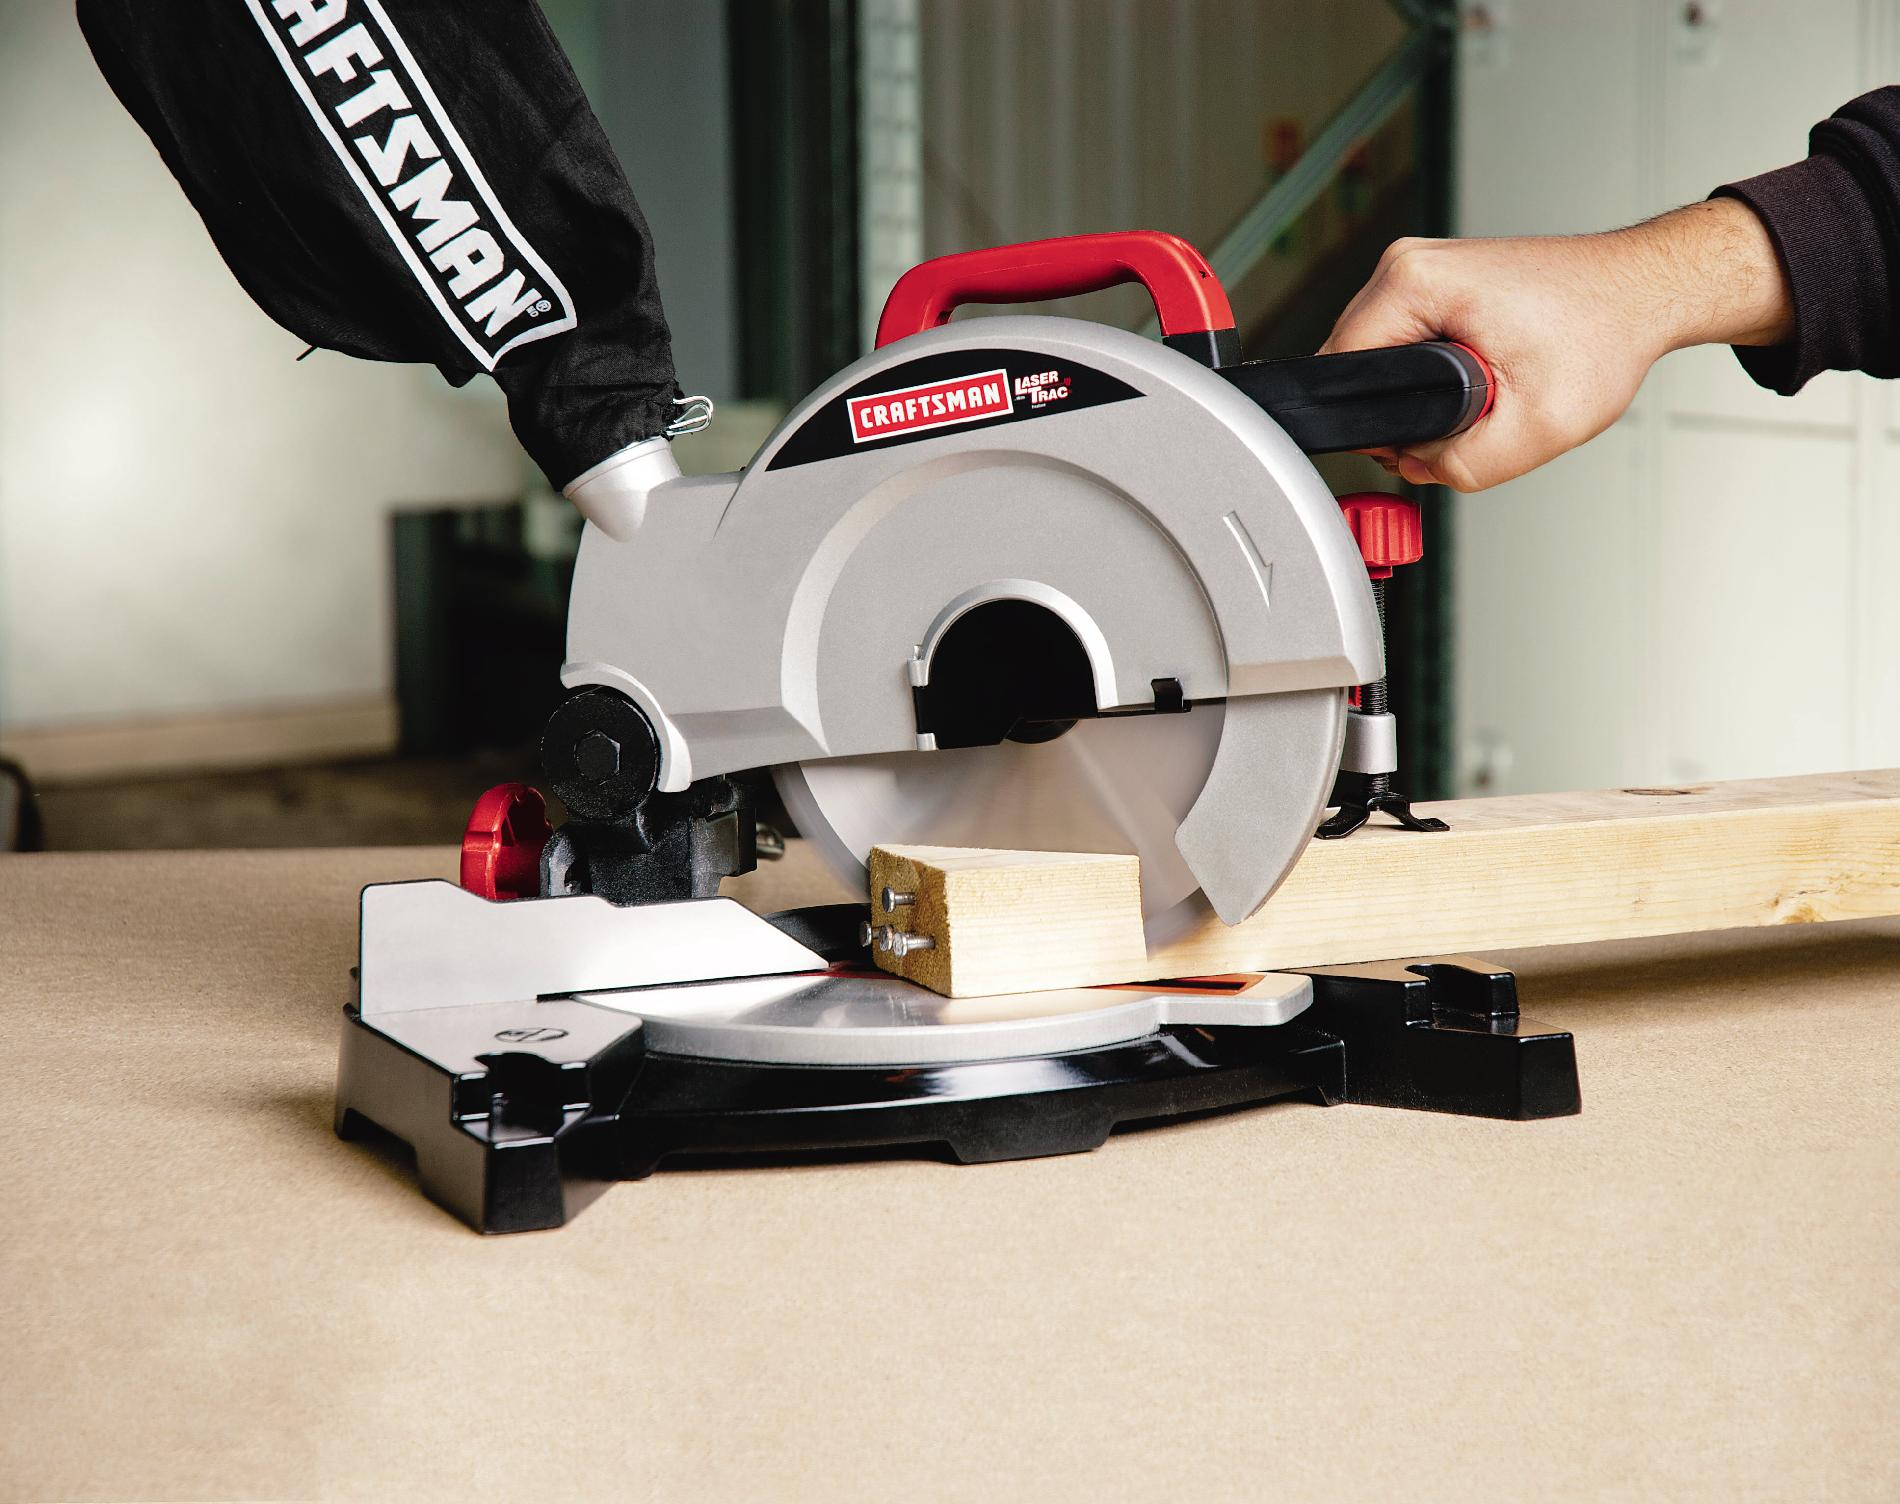 Craftsman 8-1/4-Inch Compound Saw